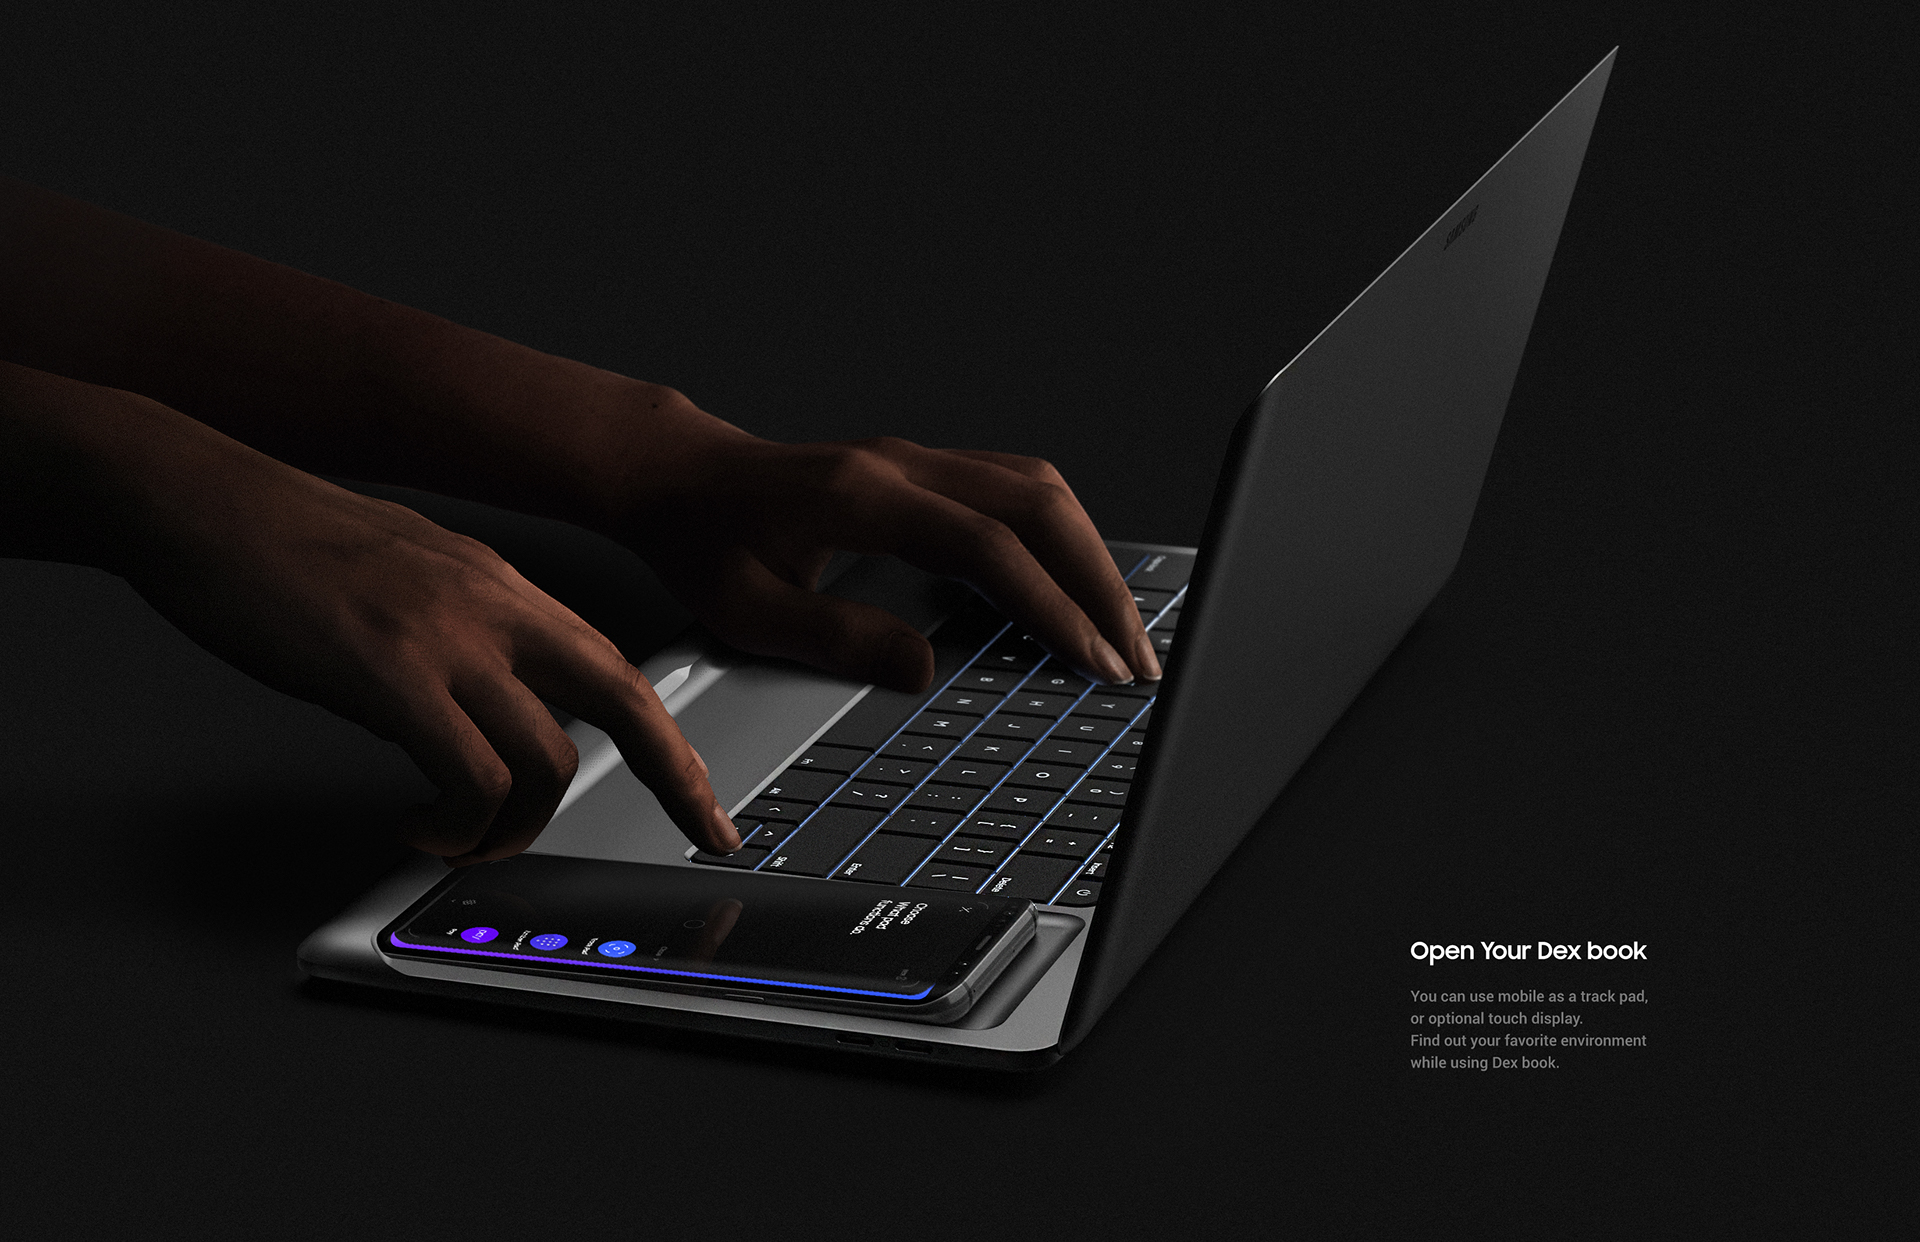 Industrial Design: Samsung Dex Book Concept